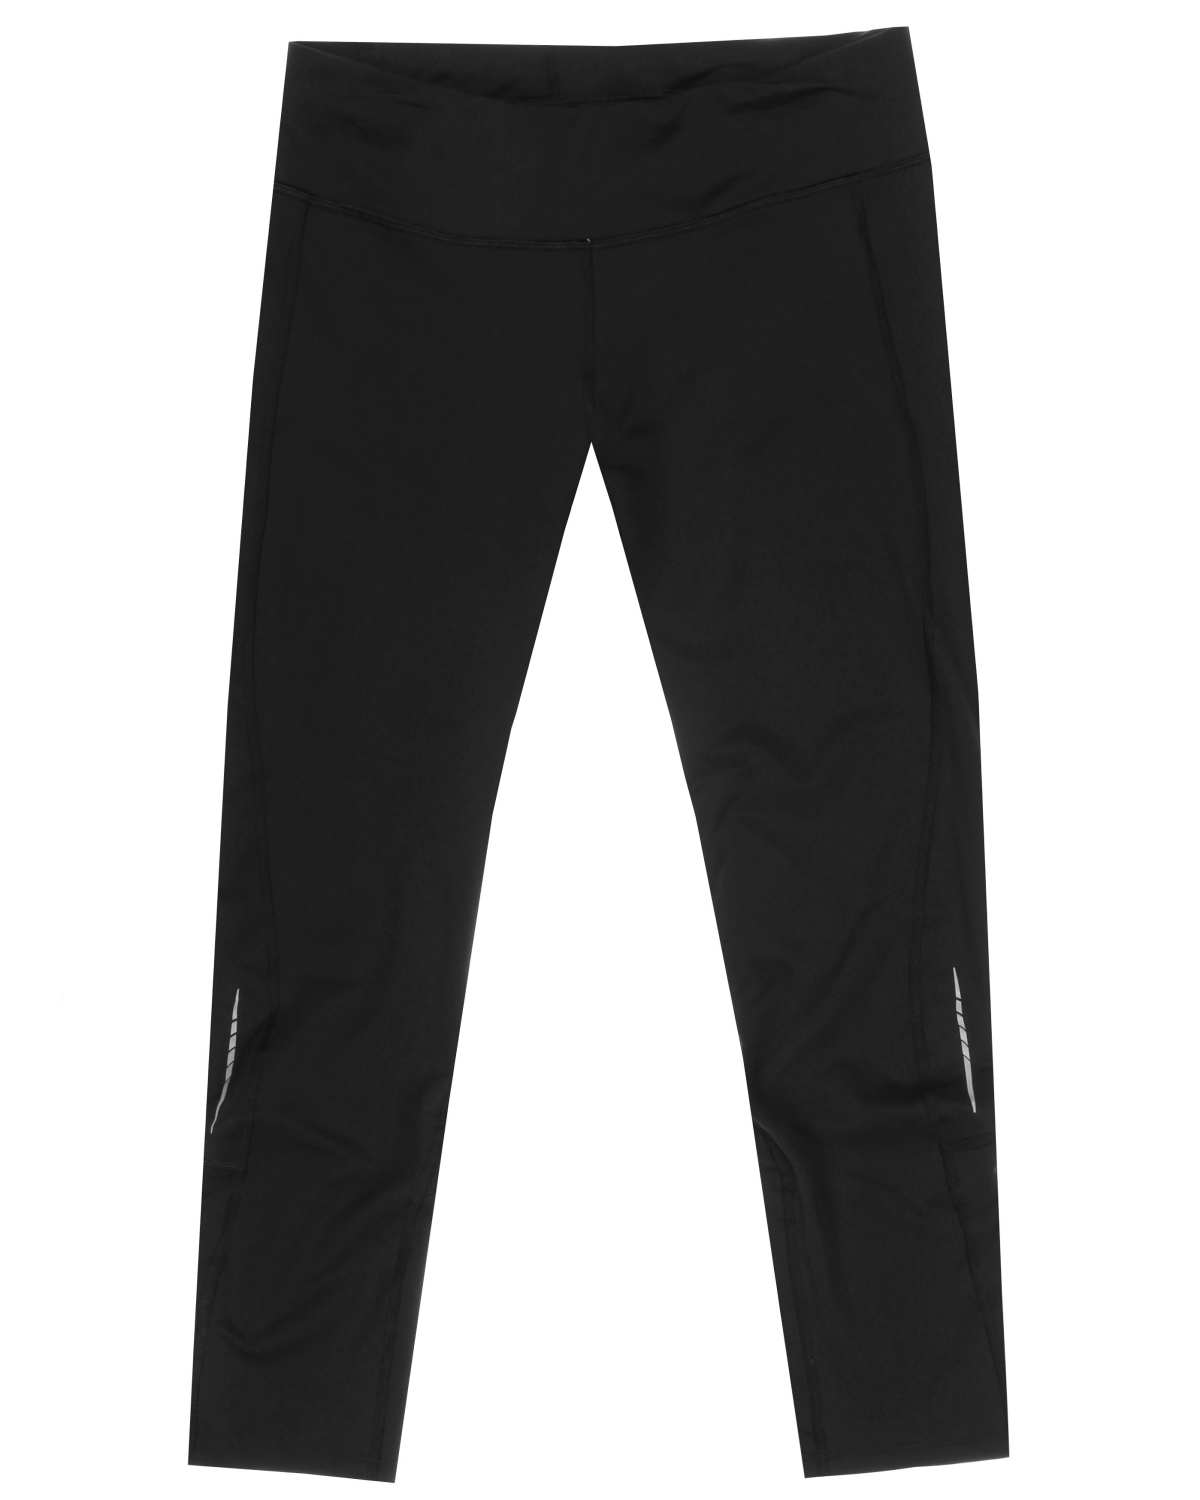 Kapta Crop Tight Women's